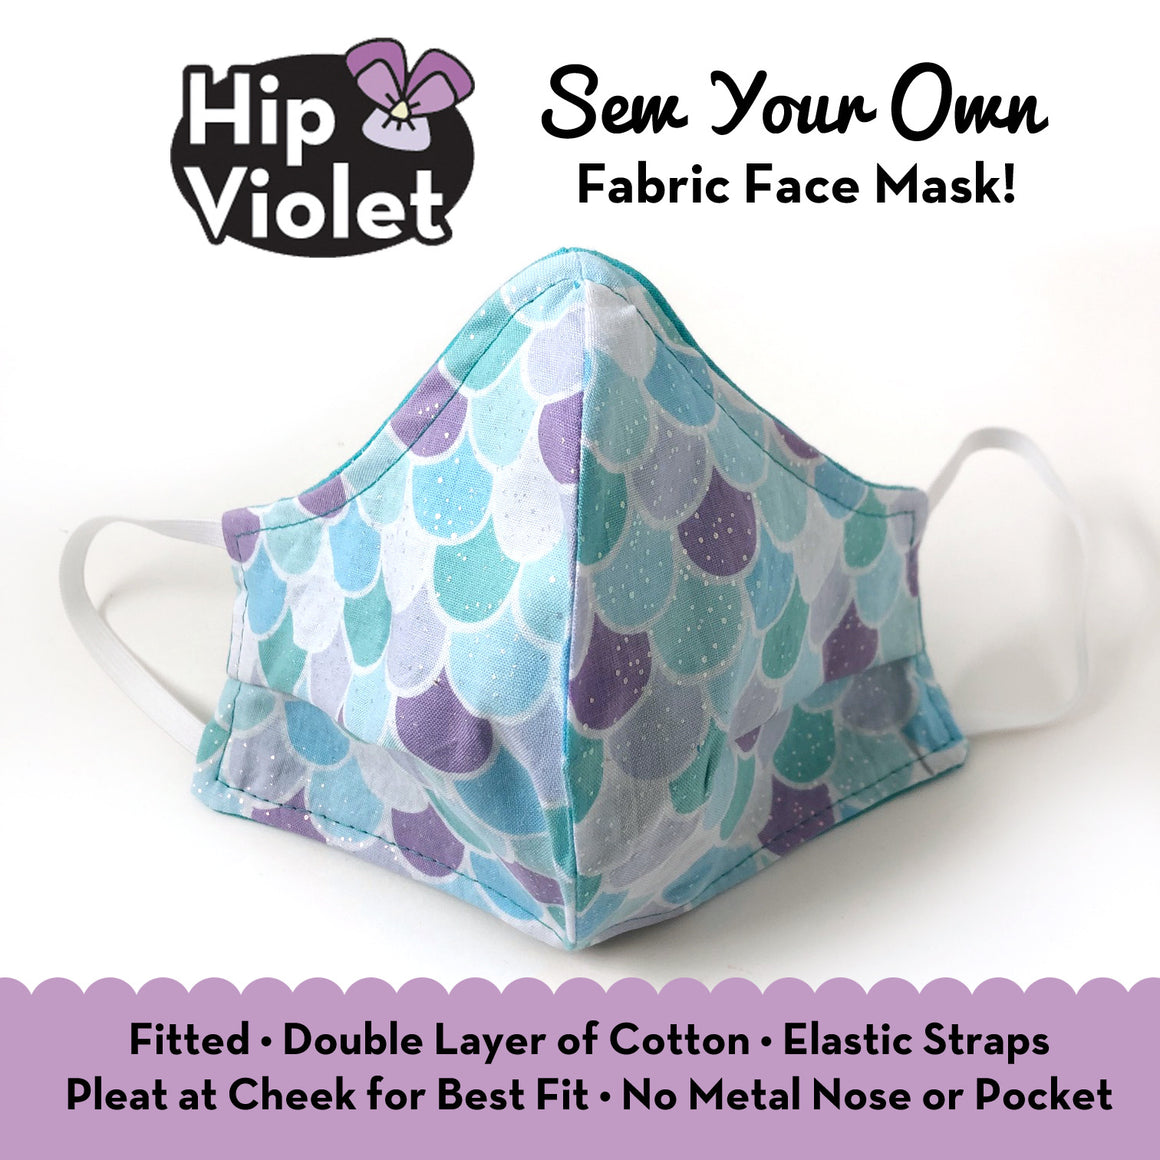 Sew-Your-Own Fabric Face Mask Pattern *FREE*